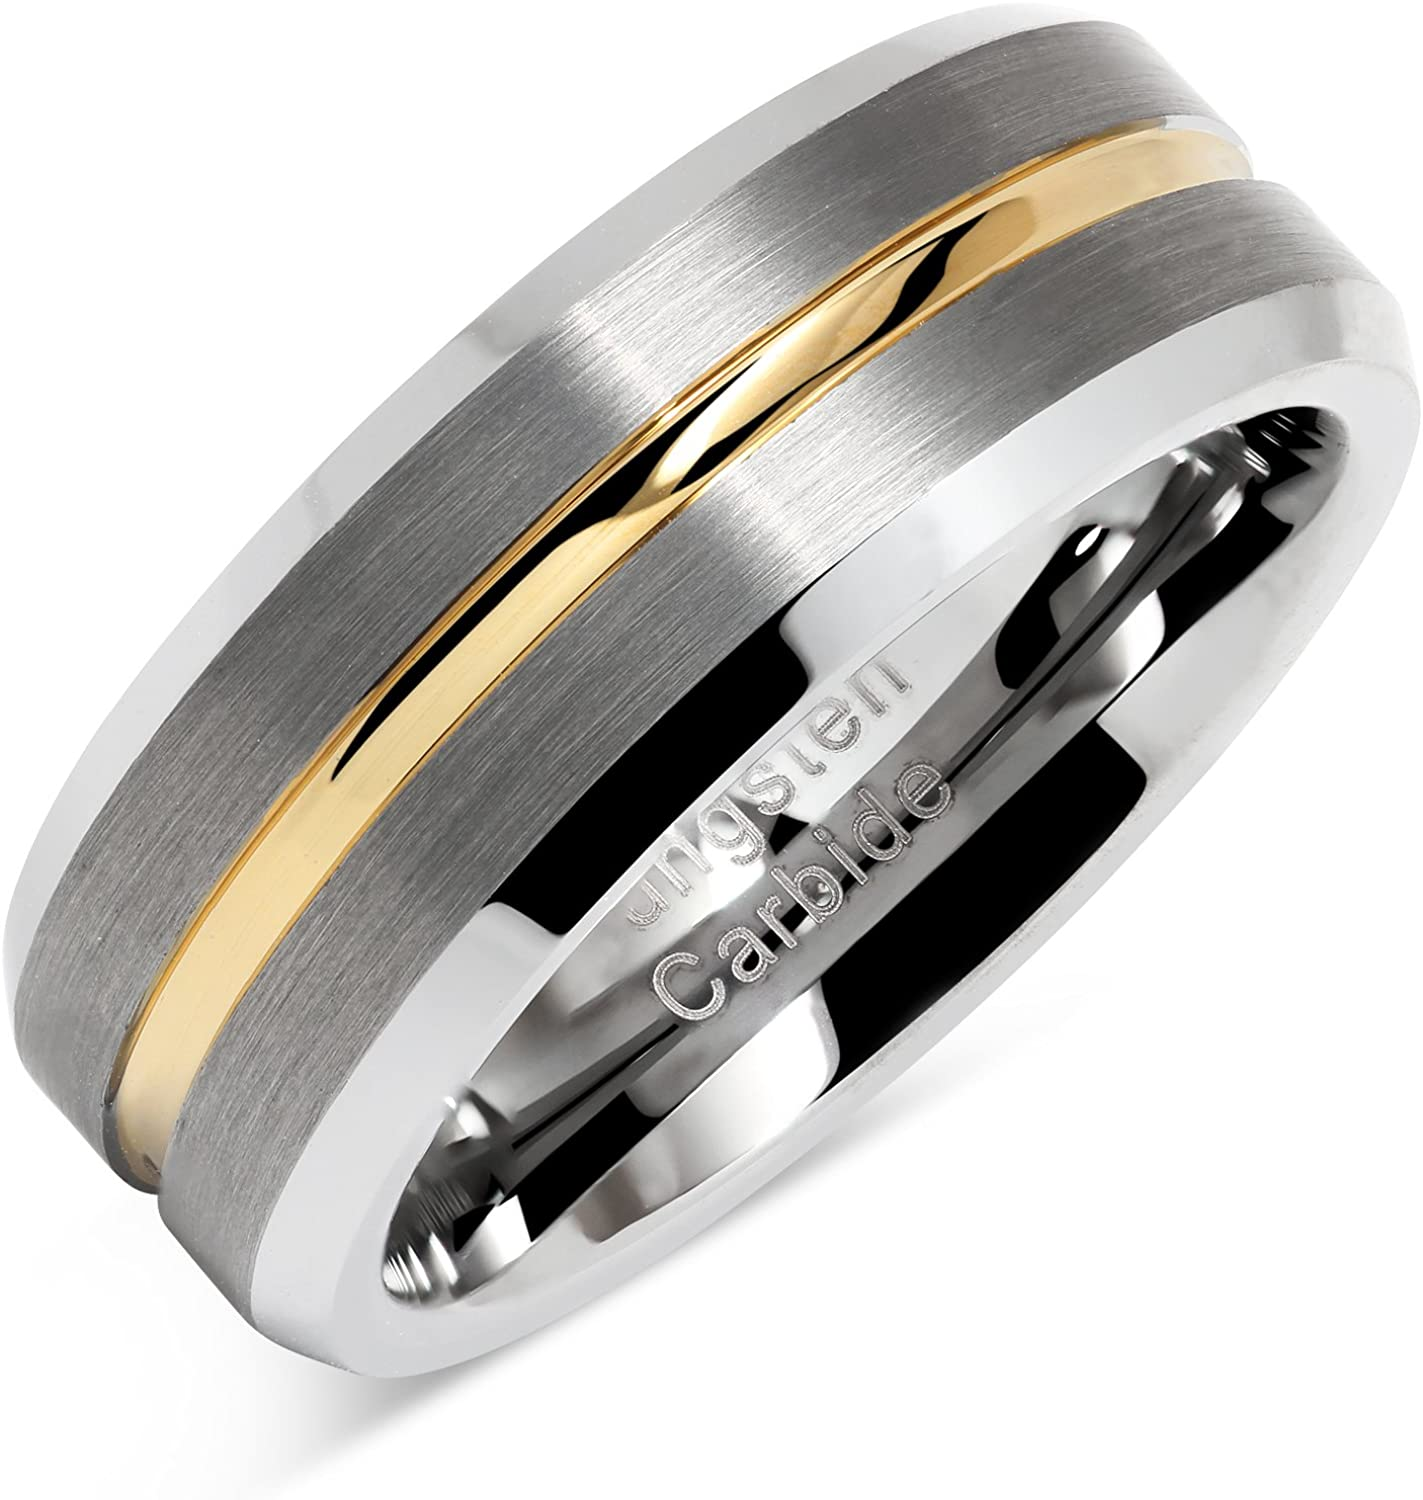 It is a picture of 41S JEWELRY Tungsten Rings for Men Two Tone Silver Wedding Bands Gold Grooved Matte Finish Size 41-141